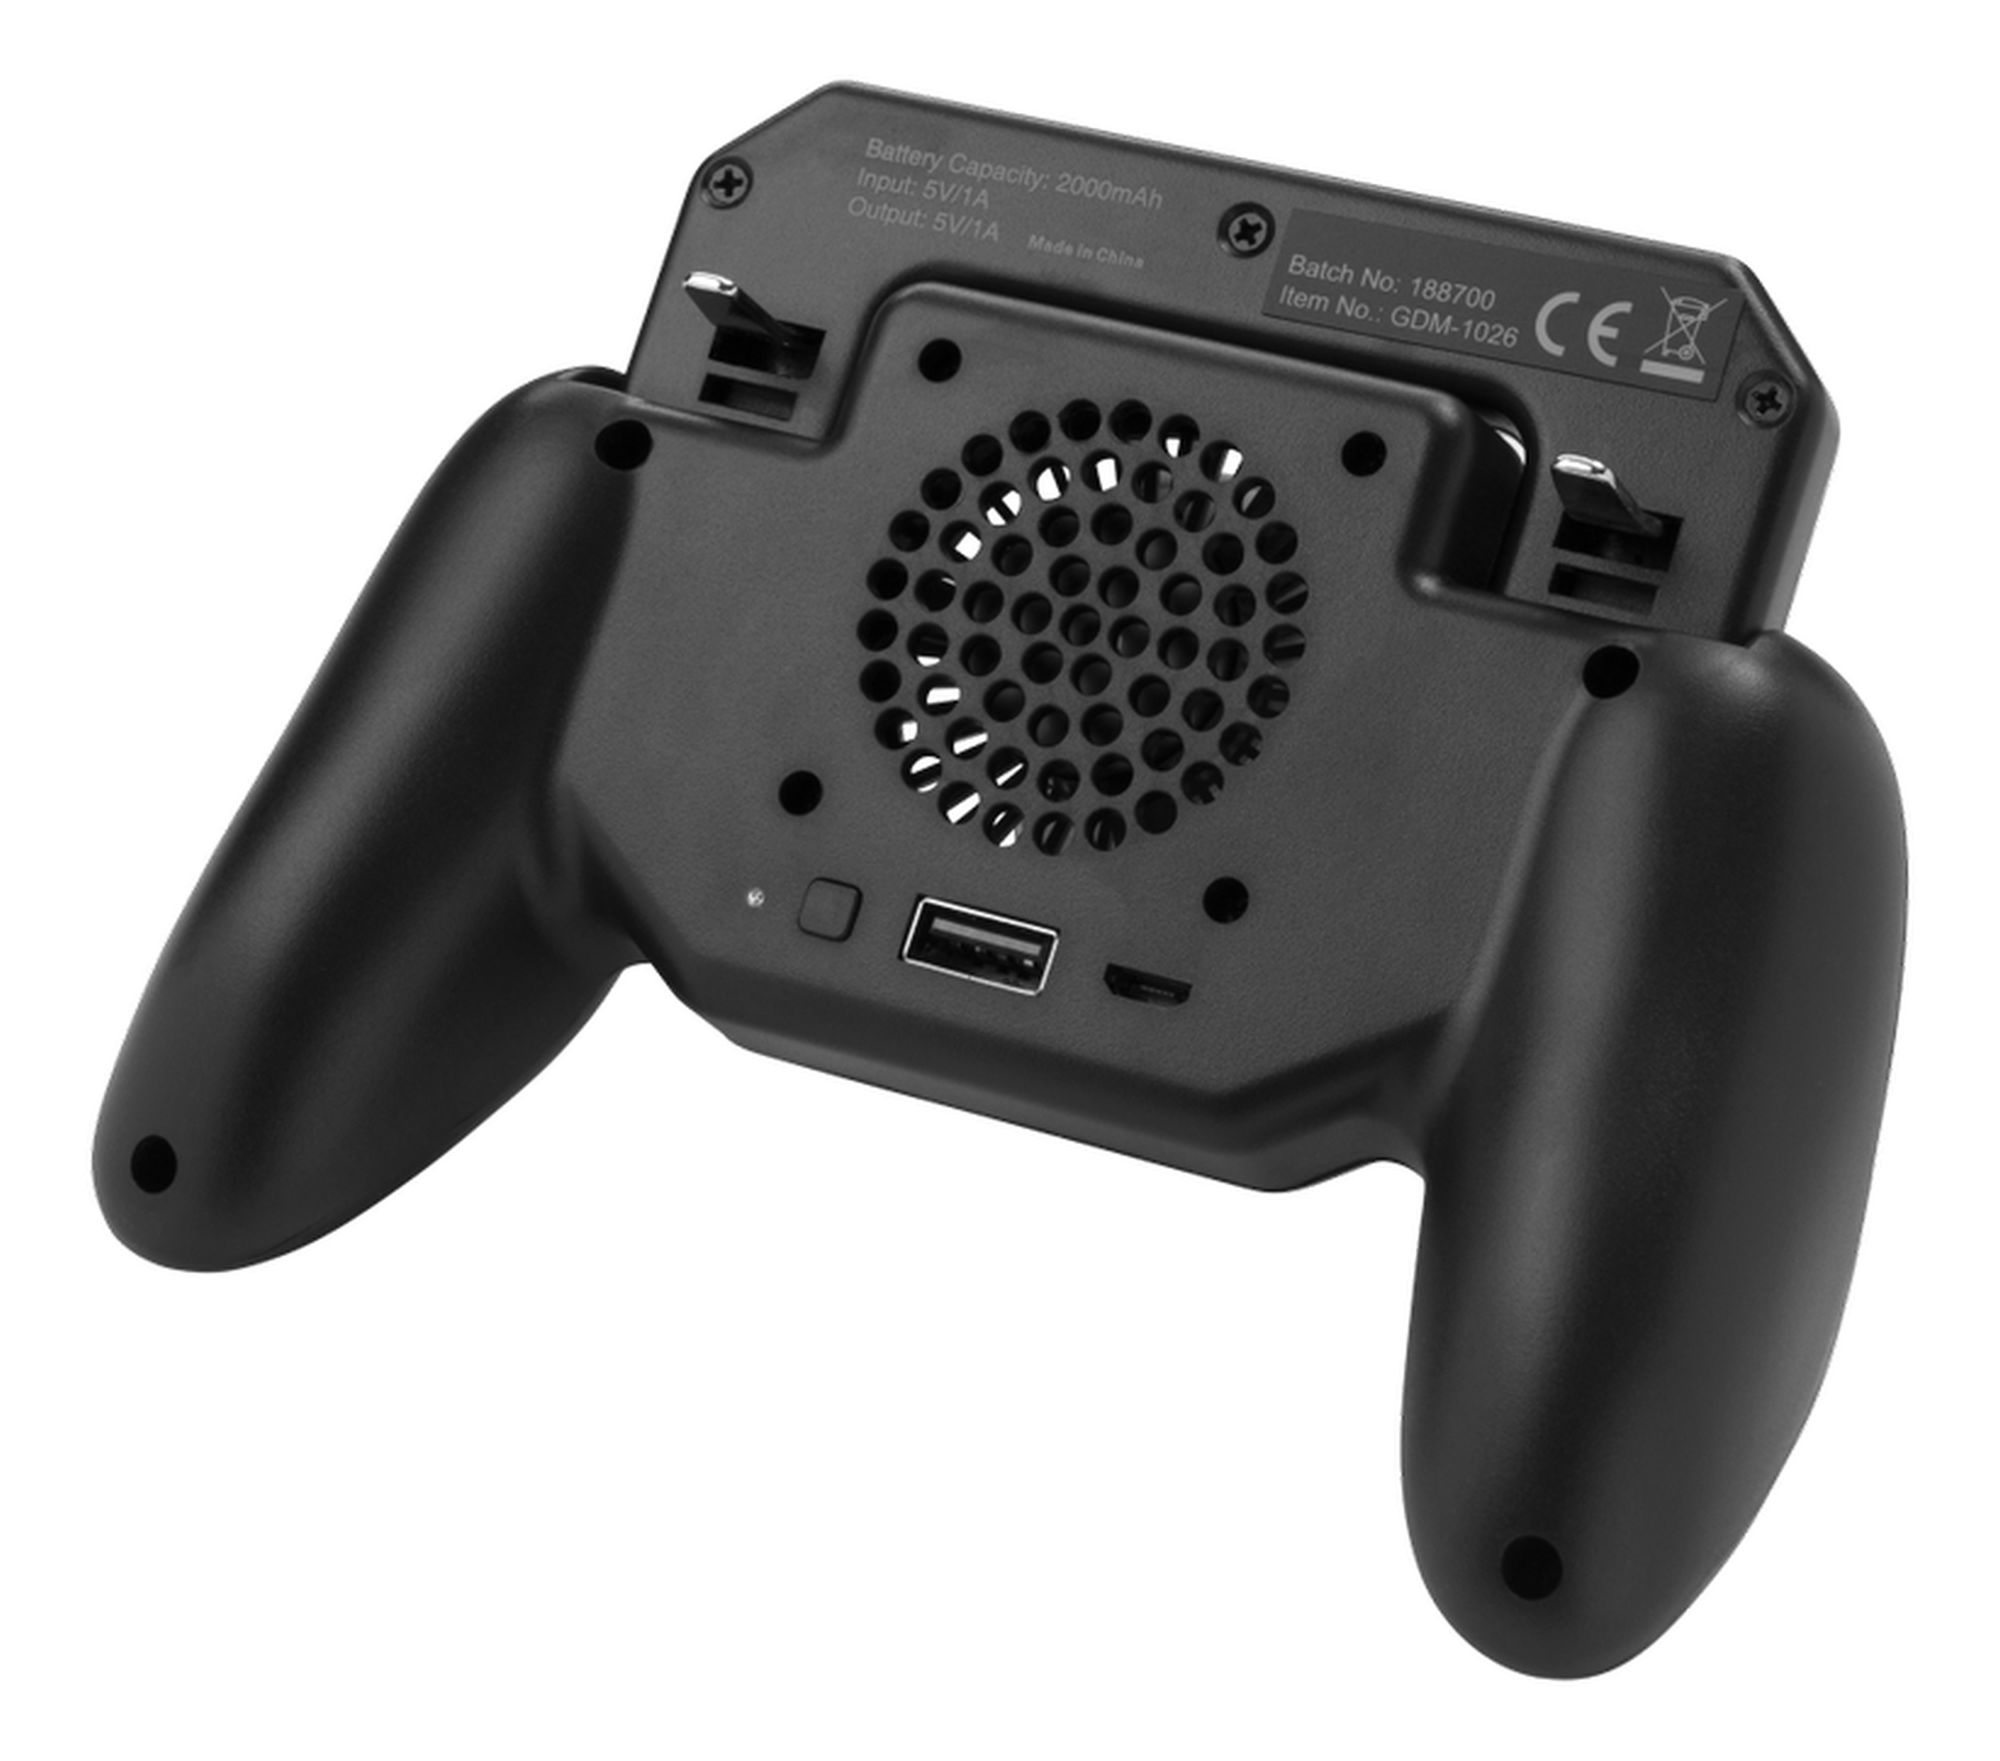 GadgetMonster GDM-1026 Handy-Gaming-Halterung